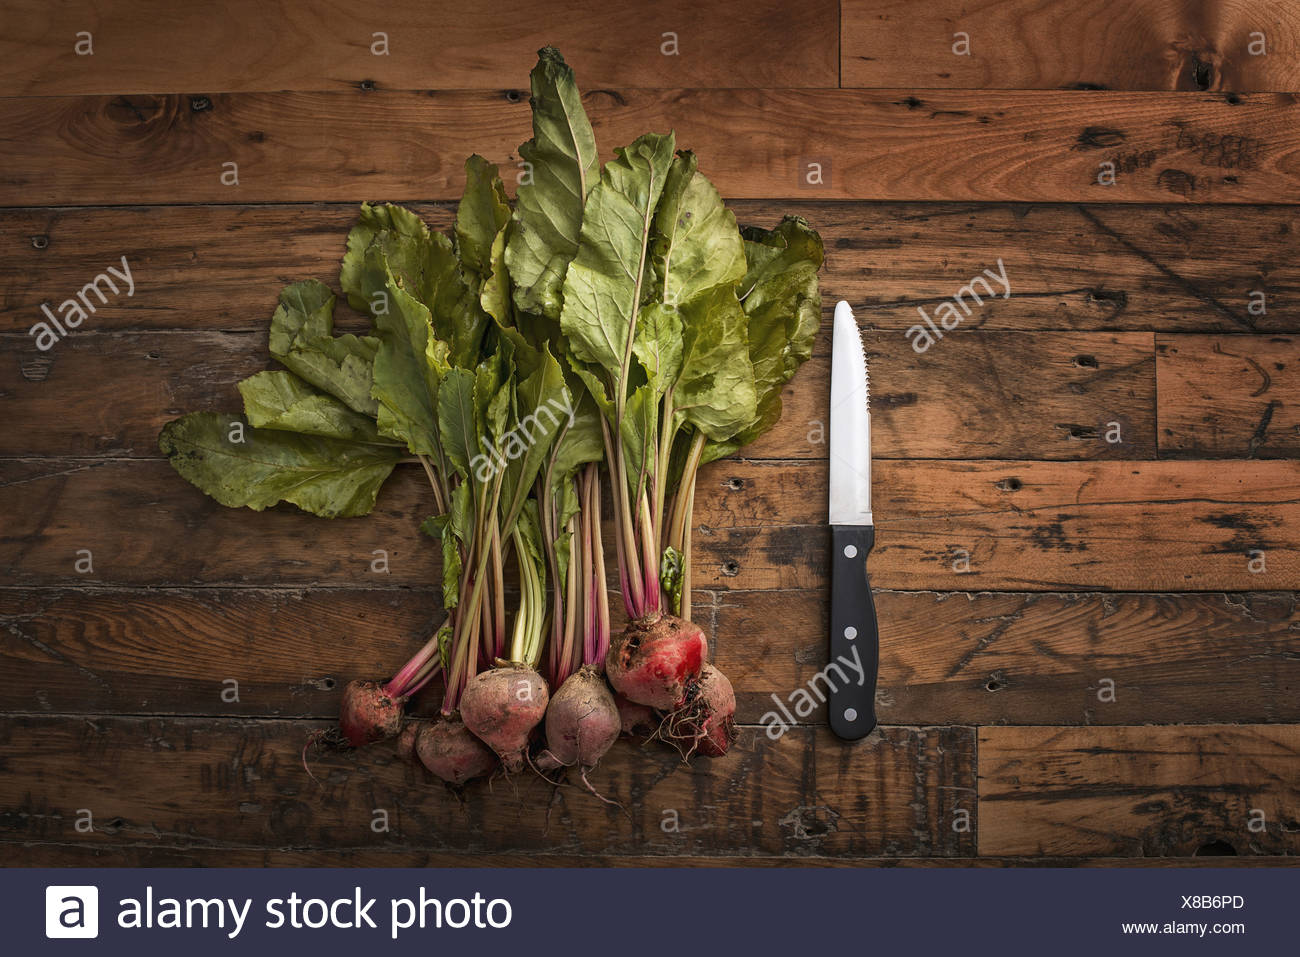 A handful of small beets fresh organic vegetables harvested for the table A vegetable knife - Stock Image